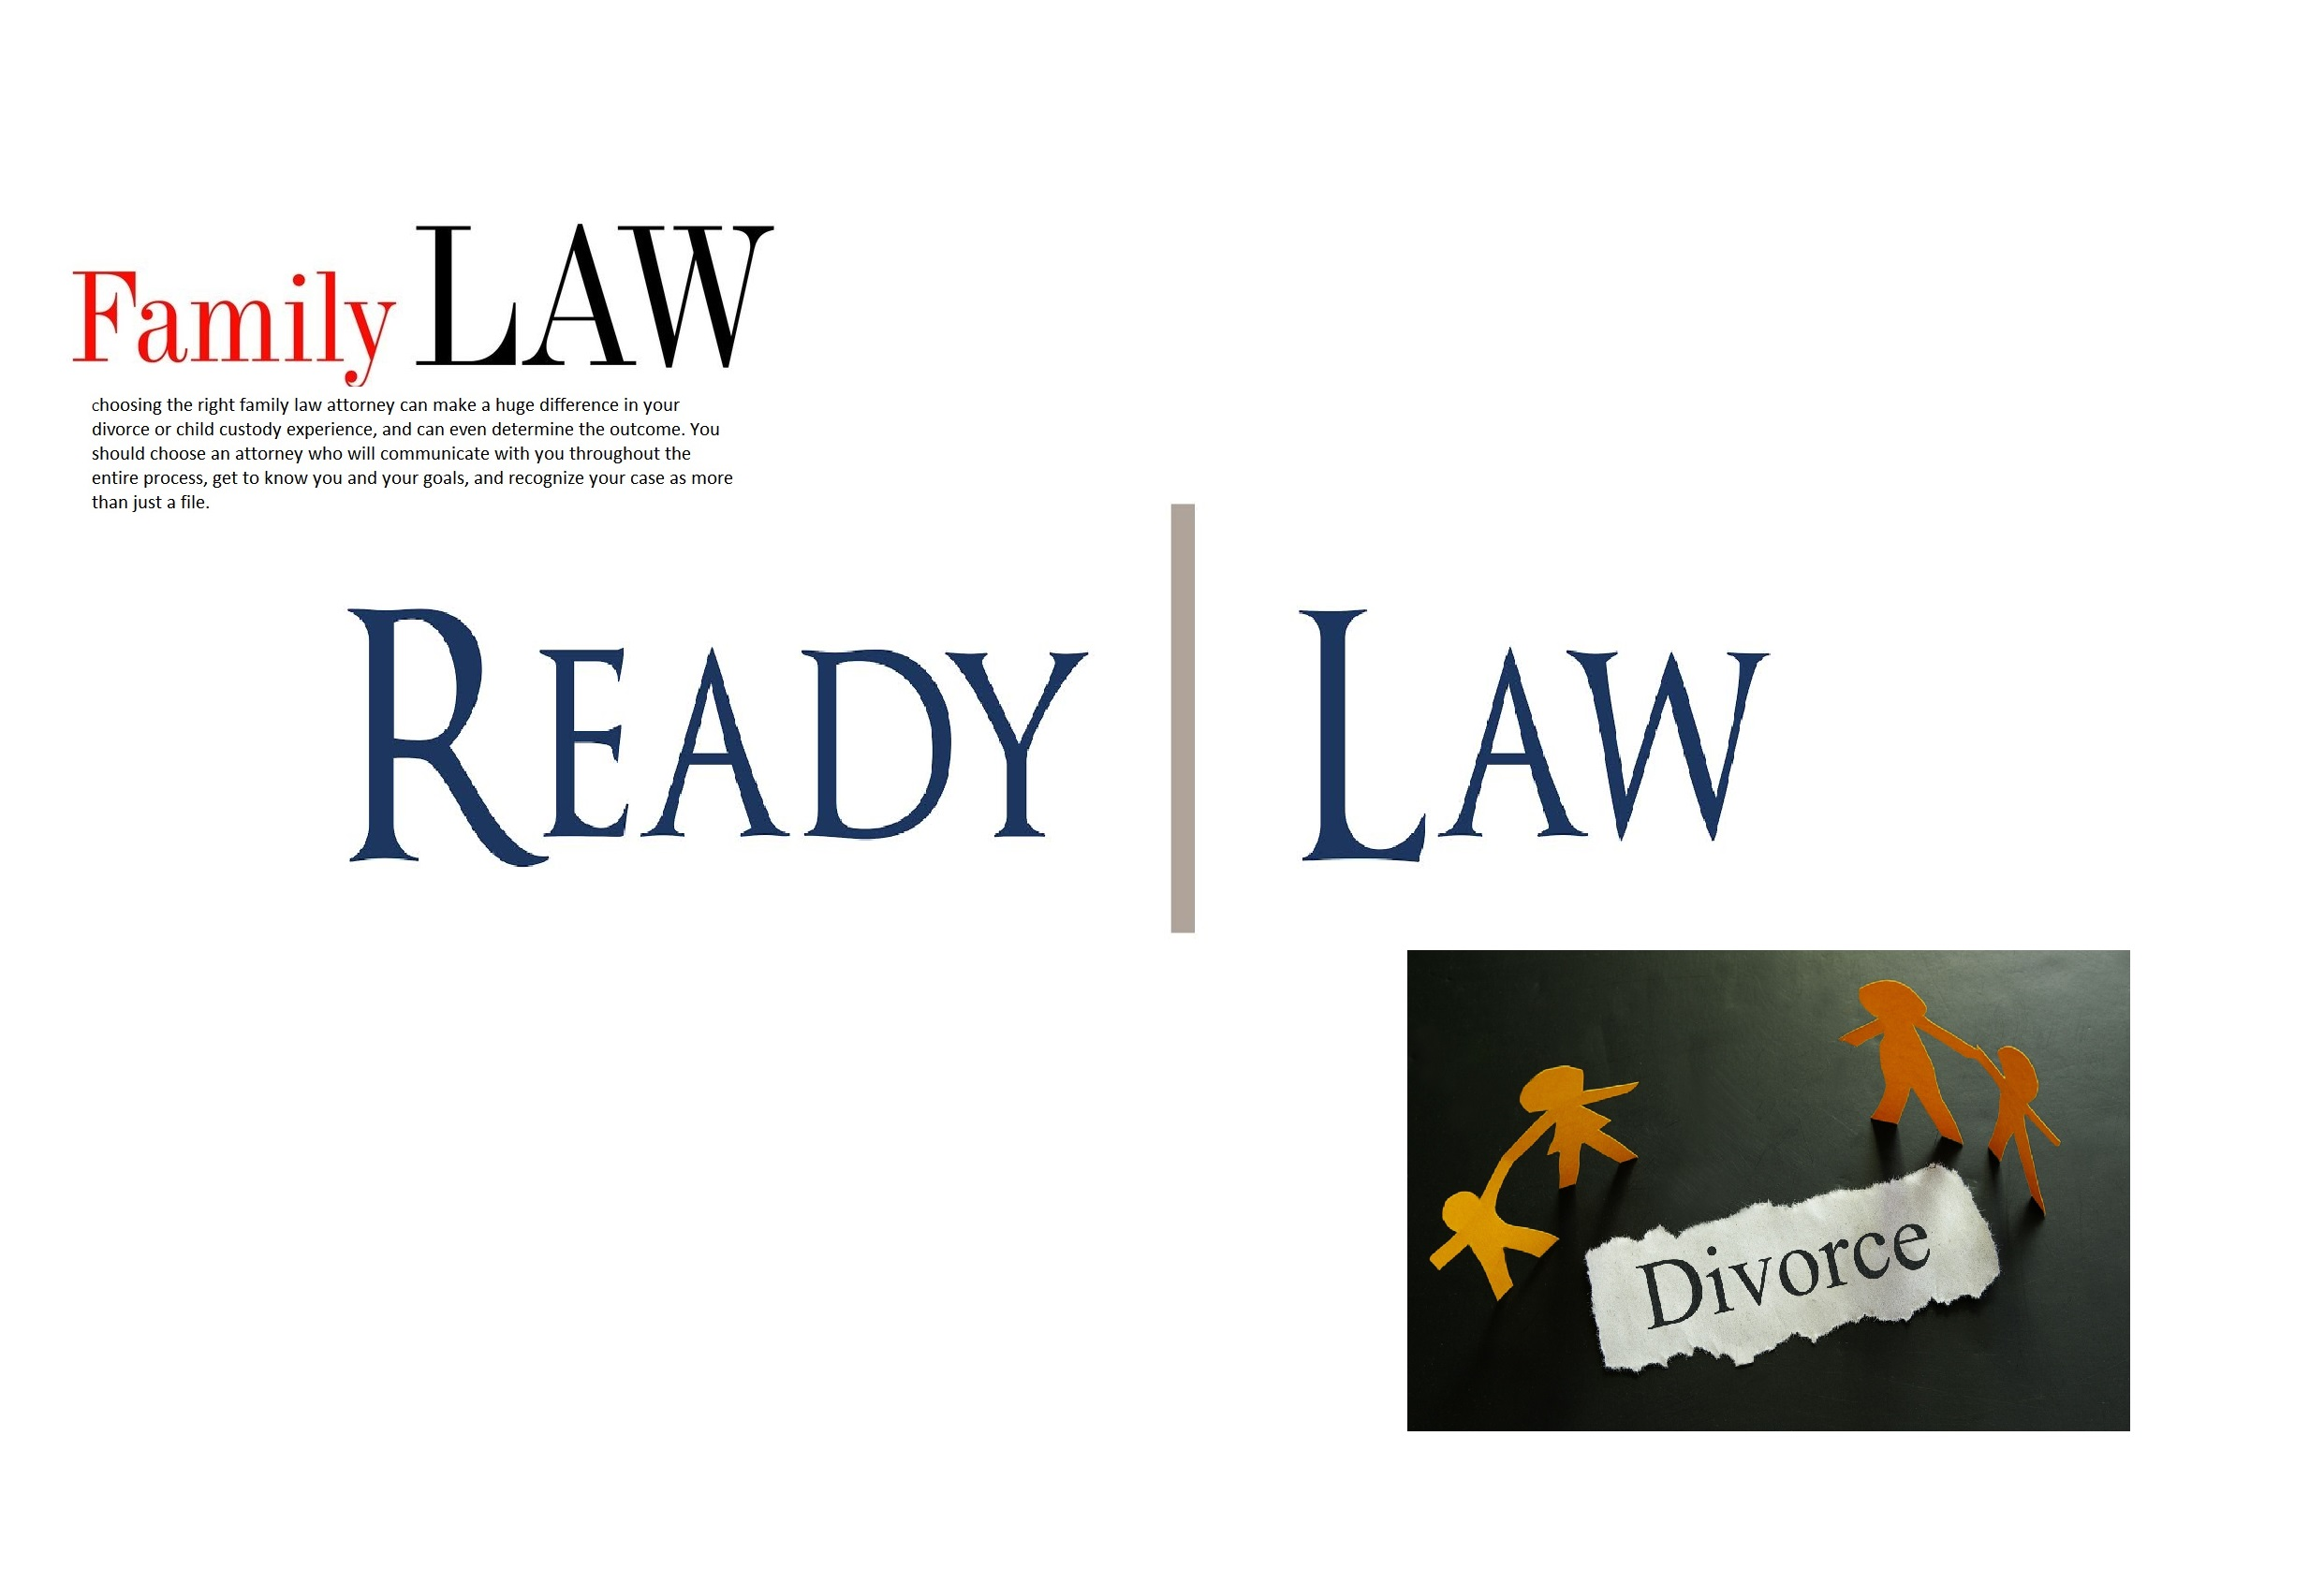 READY LAW – Divorce Lawyer & Family Attorney - ad image